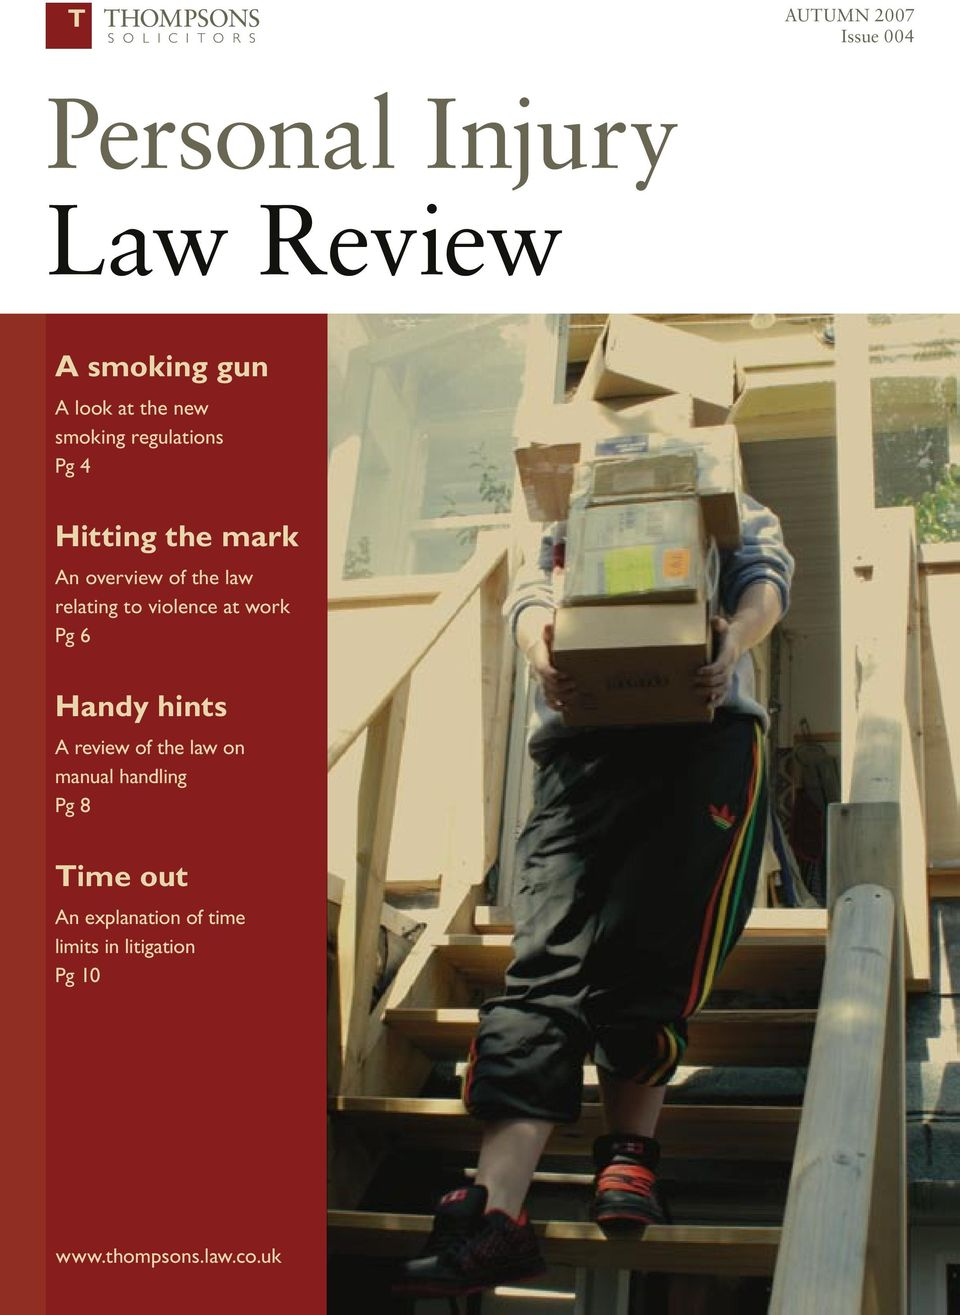 to violence at work Pg 6 Handy hints A review of the law on manual handling Pg